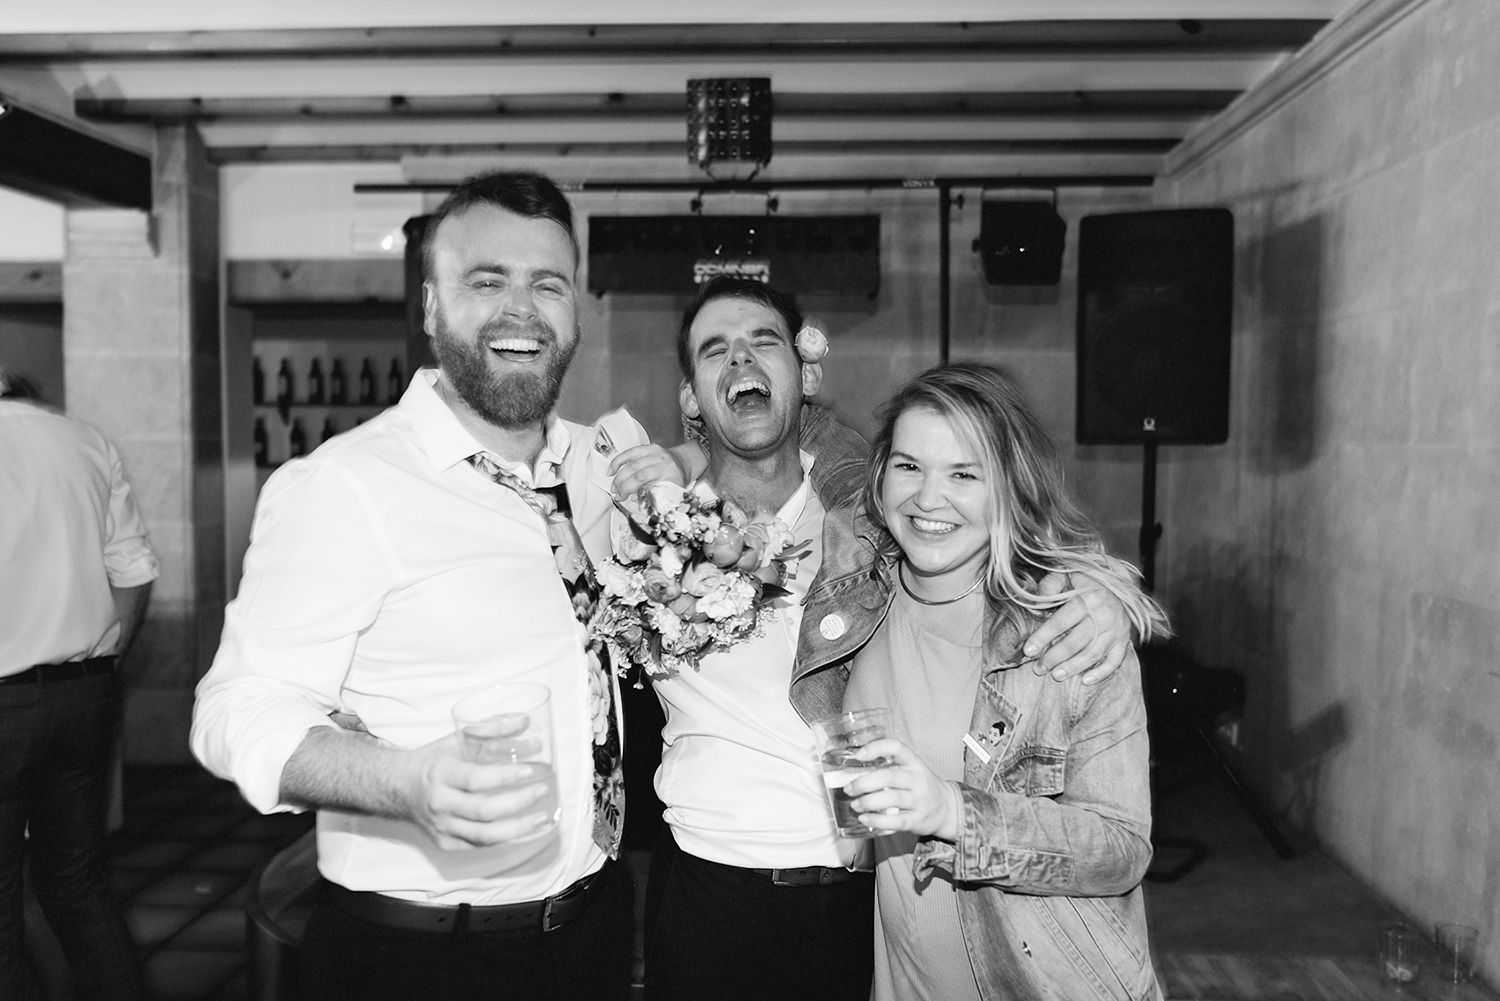 destination-wedding-photographer-from-toronto-ryanne-hollies-photography-documentary-editorial-style-toronto-wedding-photographer-junebug-weddings-reception-partying-wedding-guests-dancing-goofy-candid-moments-hilarious-garter-toss.jpg